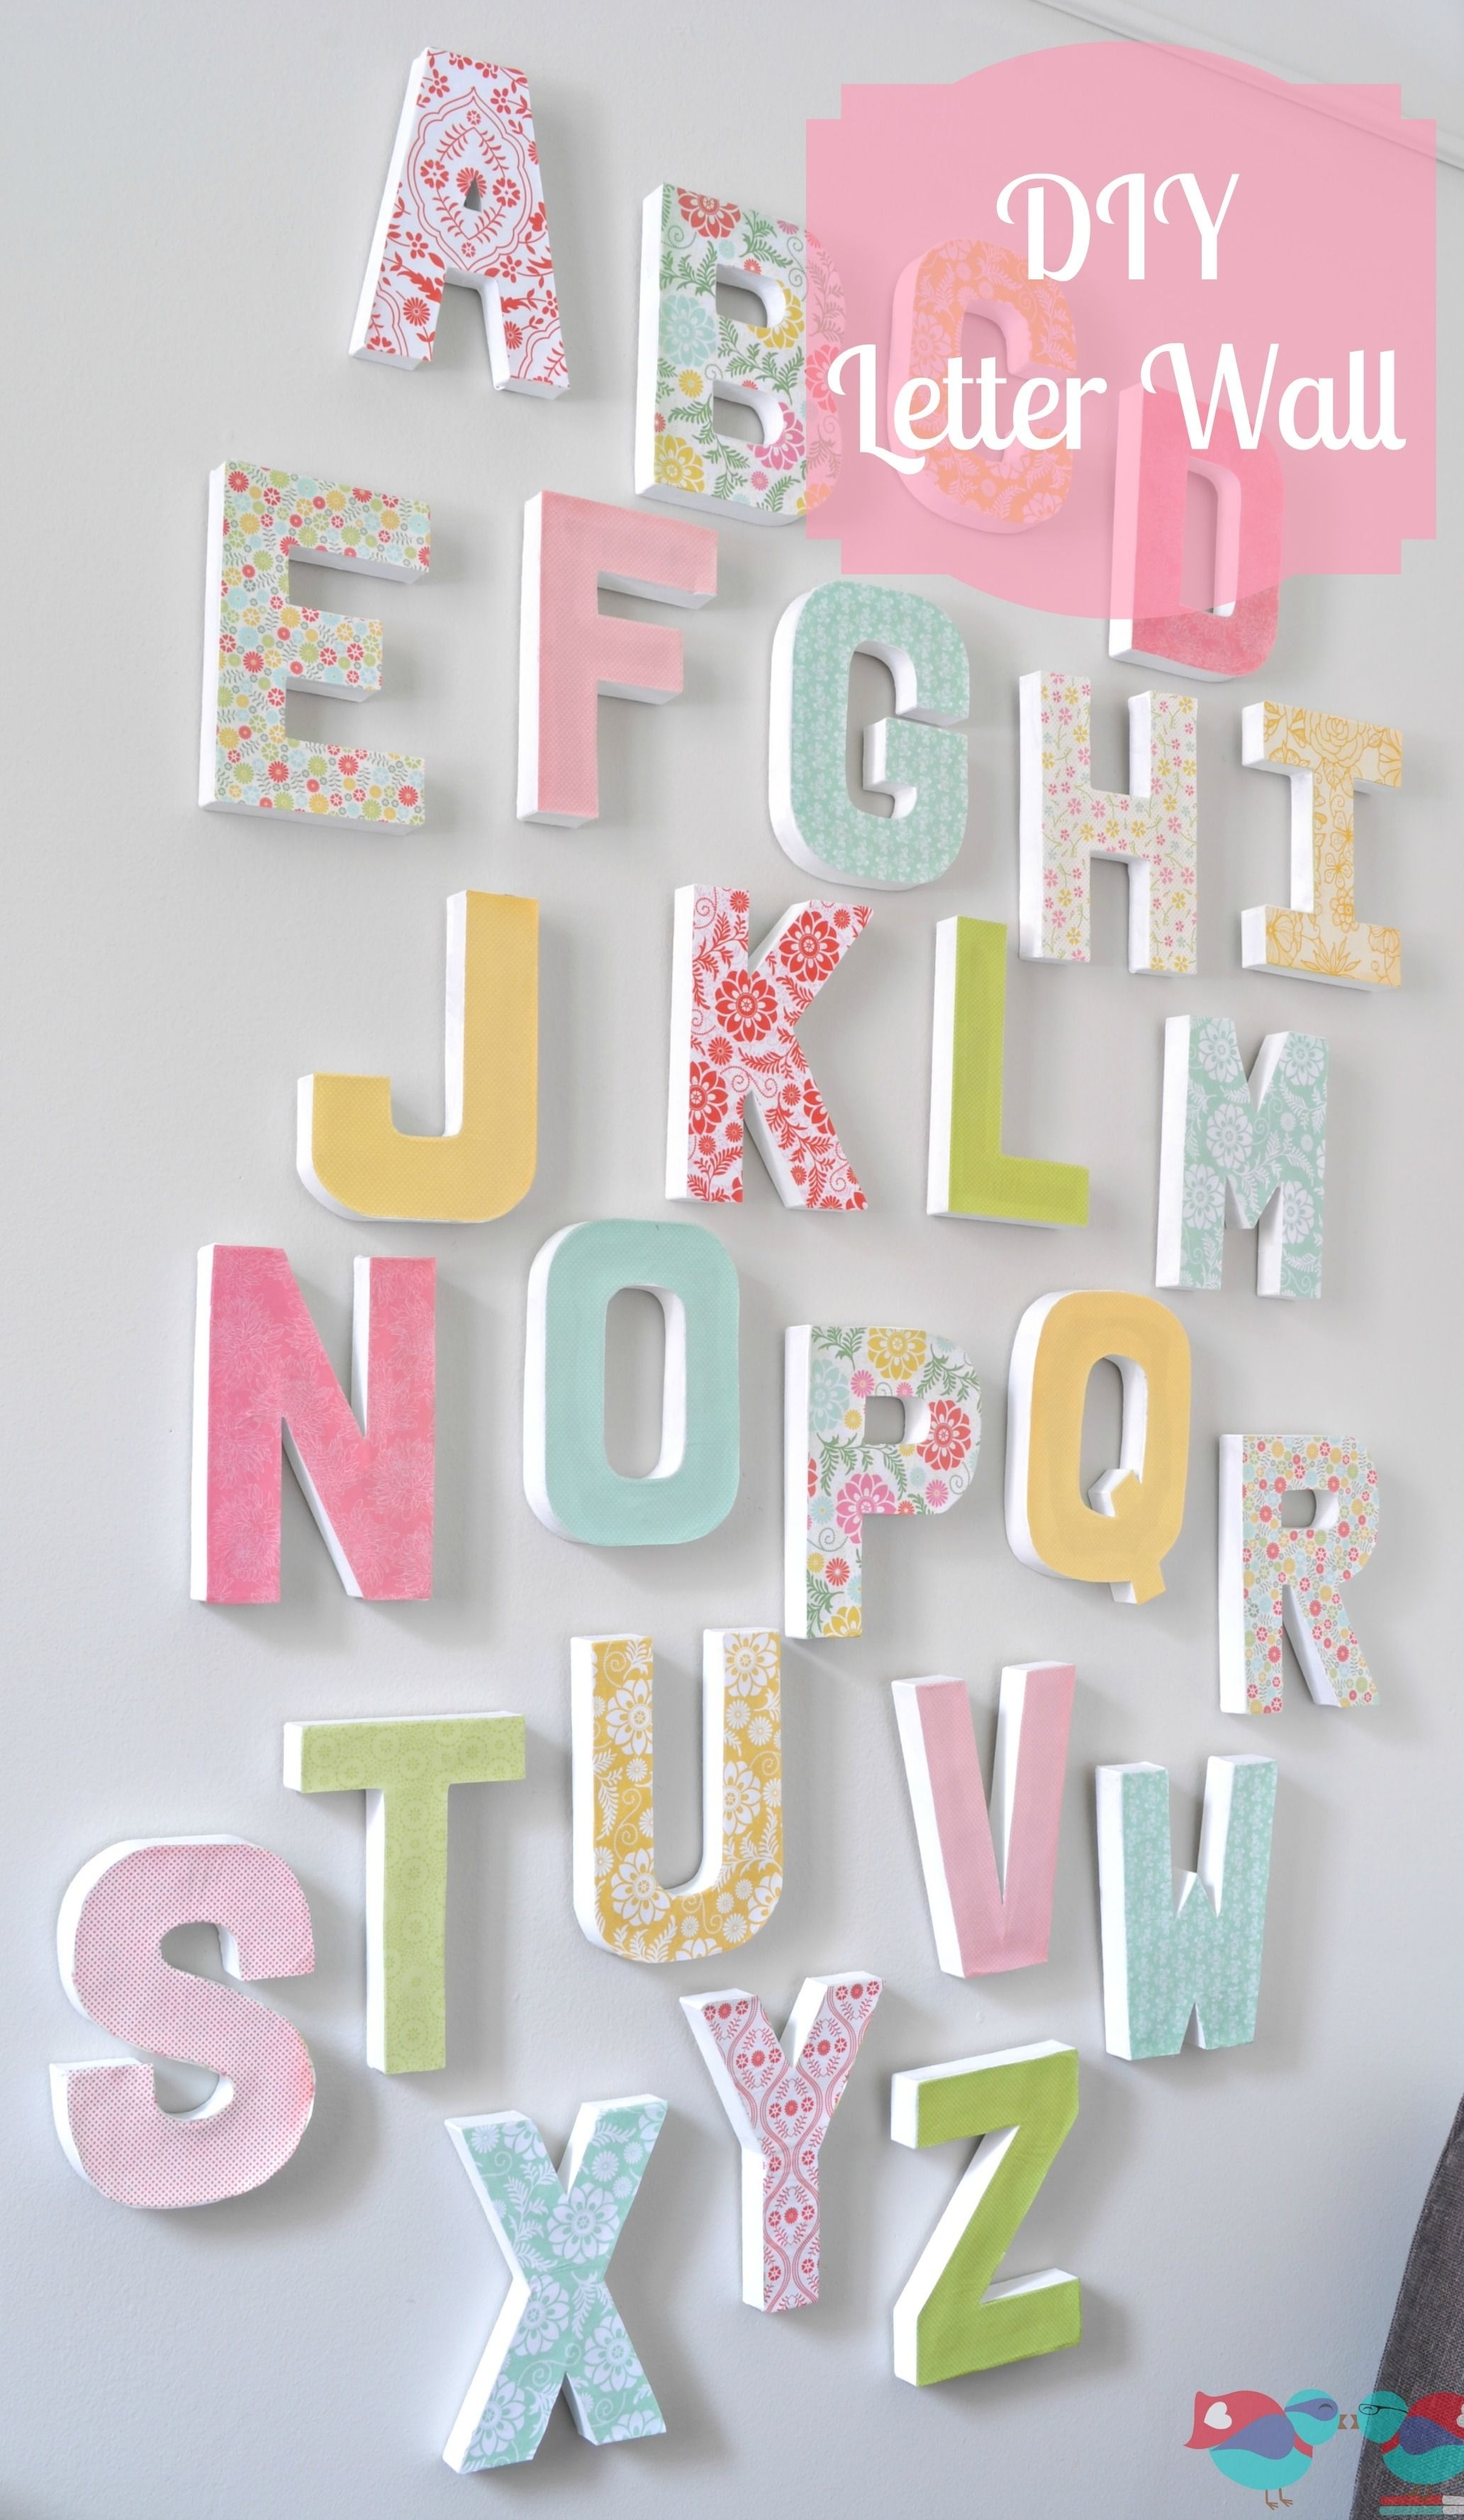 Diy Letter Wall Decor | Craft With Joann | Pinterest | Diy Letters Pertaining To Most Popular Letter Wall Art (View 3 of 20)